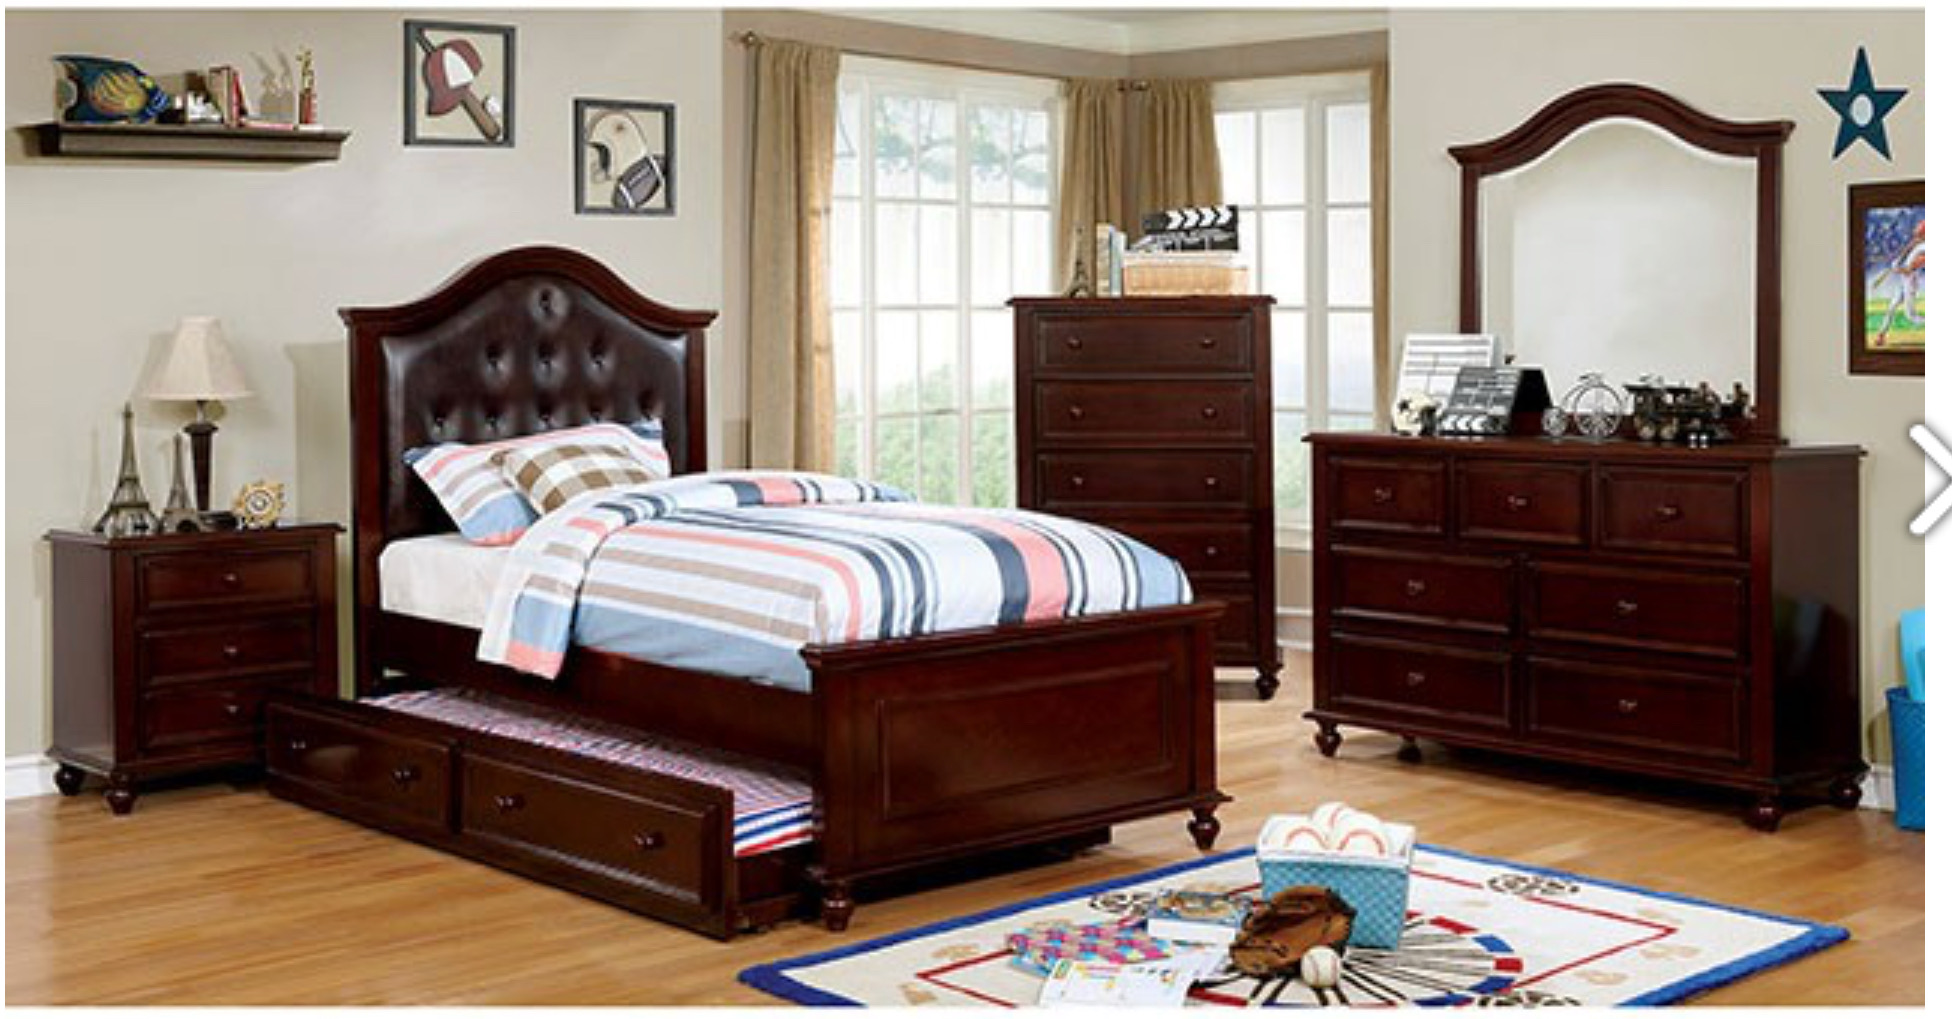 TWIN BEDROOM SET 4PC $1399.